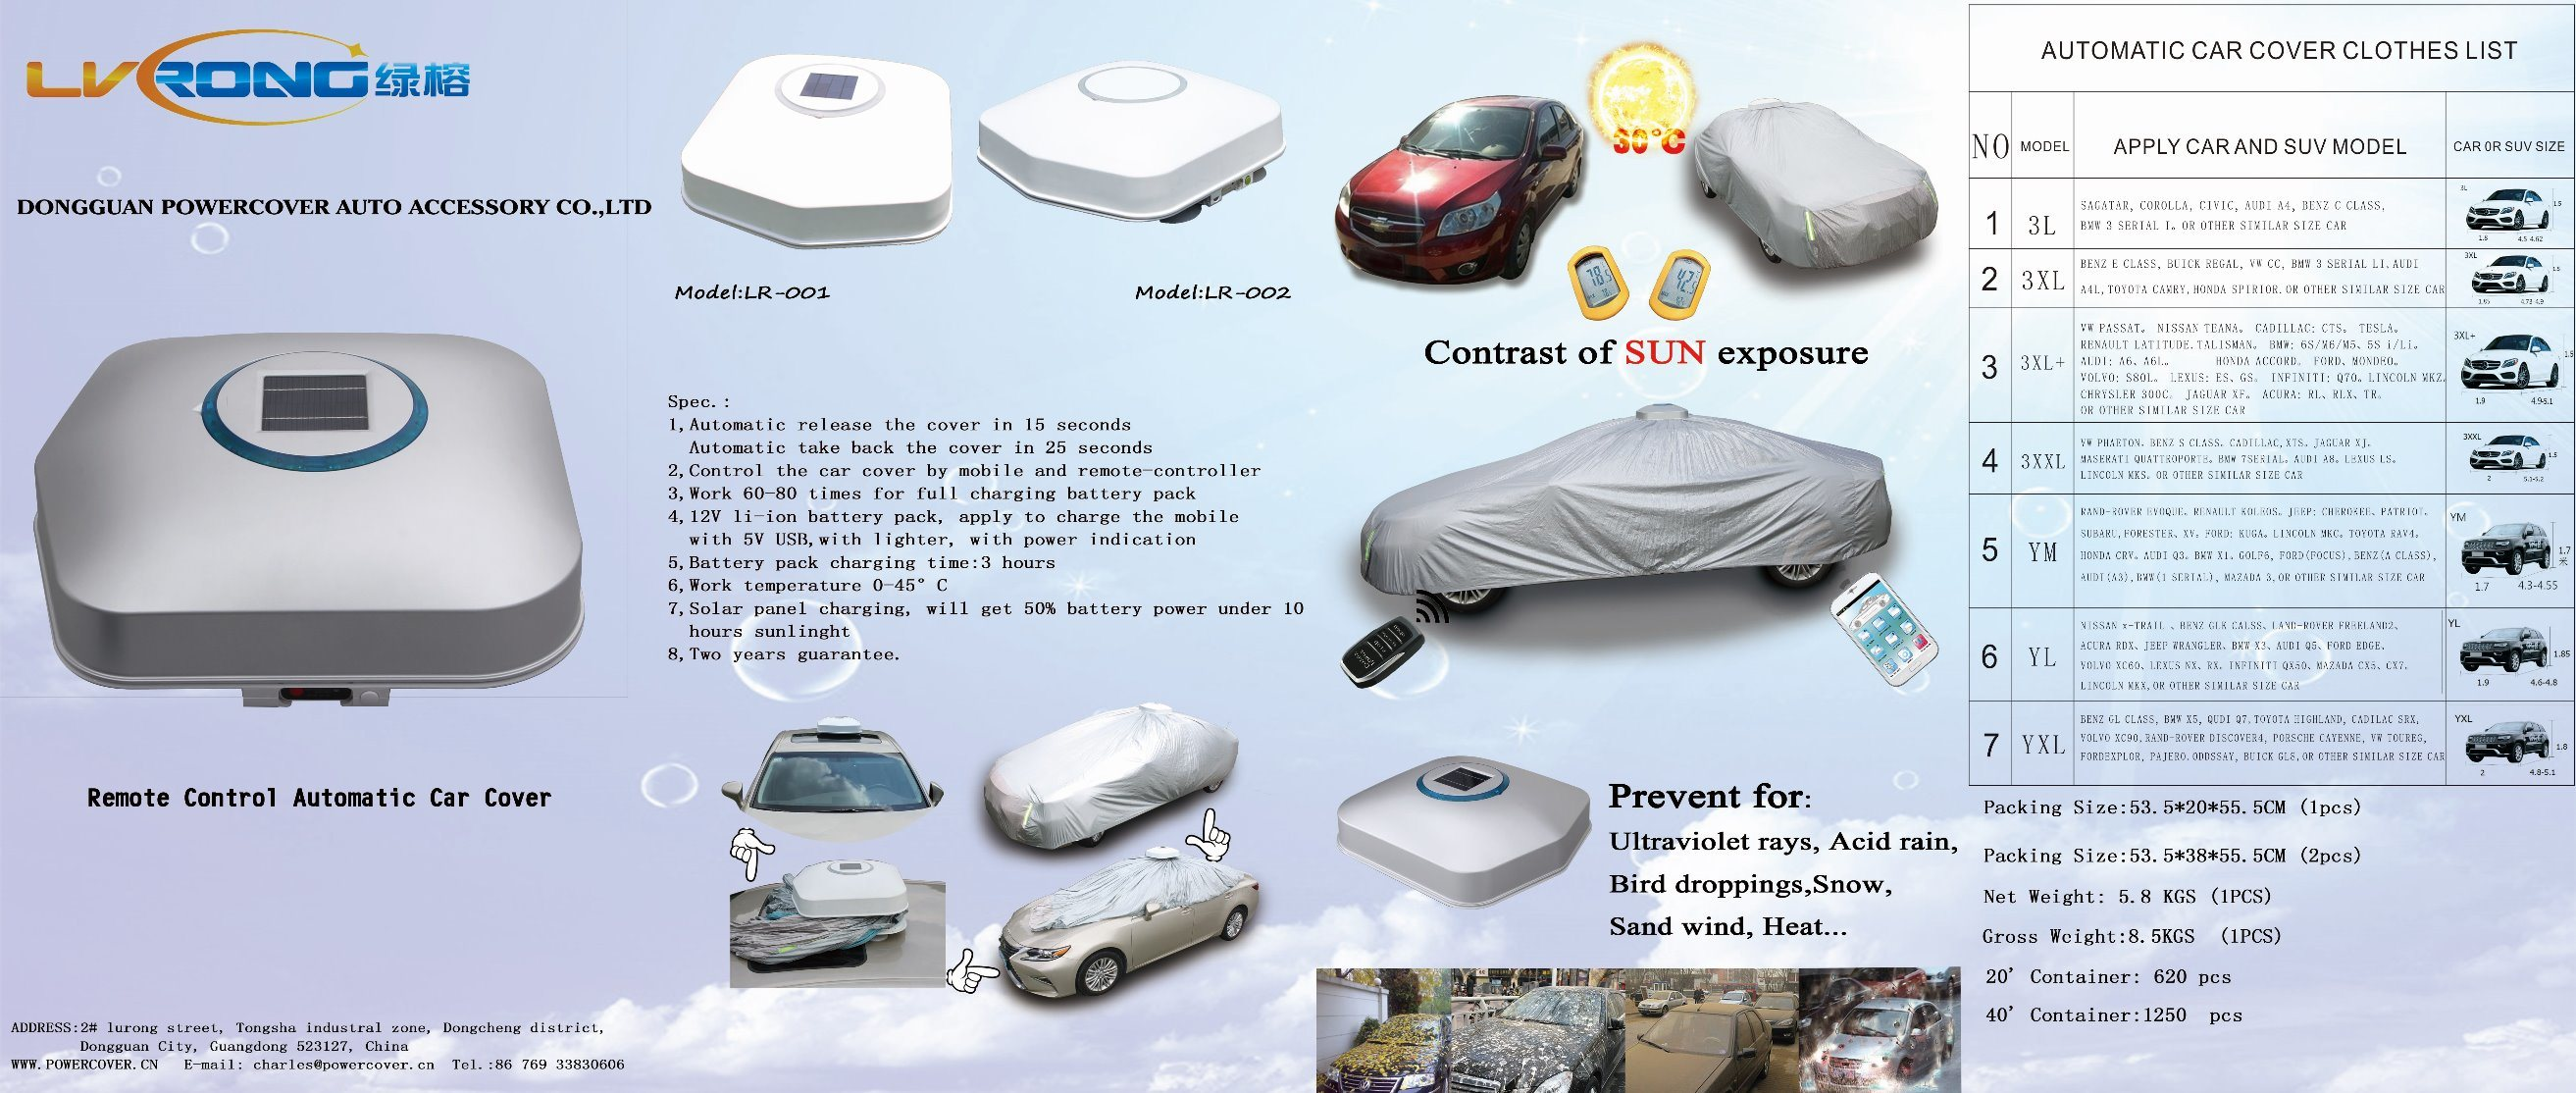 Automatic Car Cover for BMW Car Cover